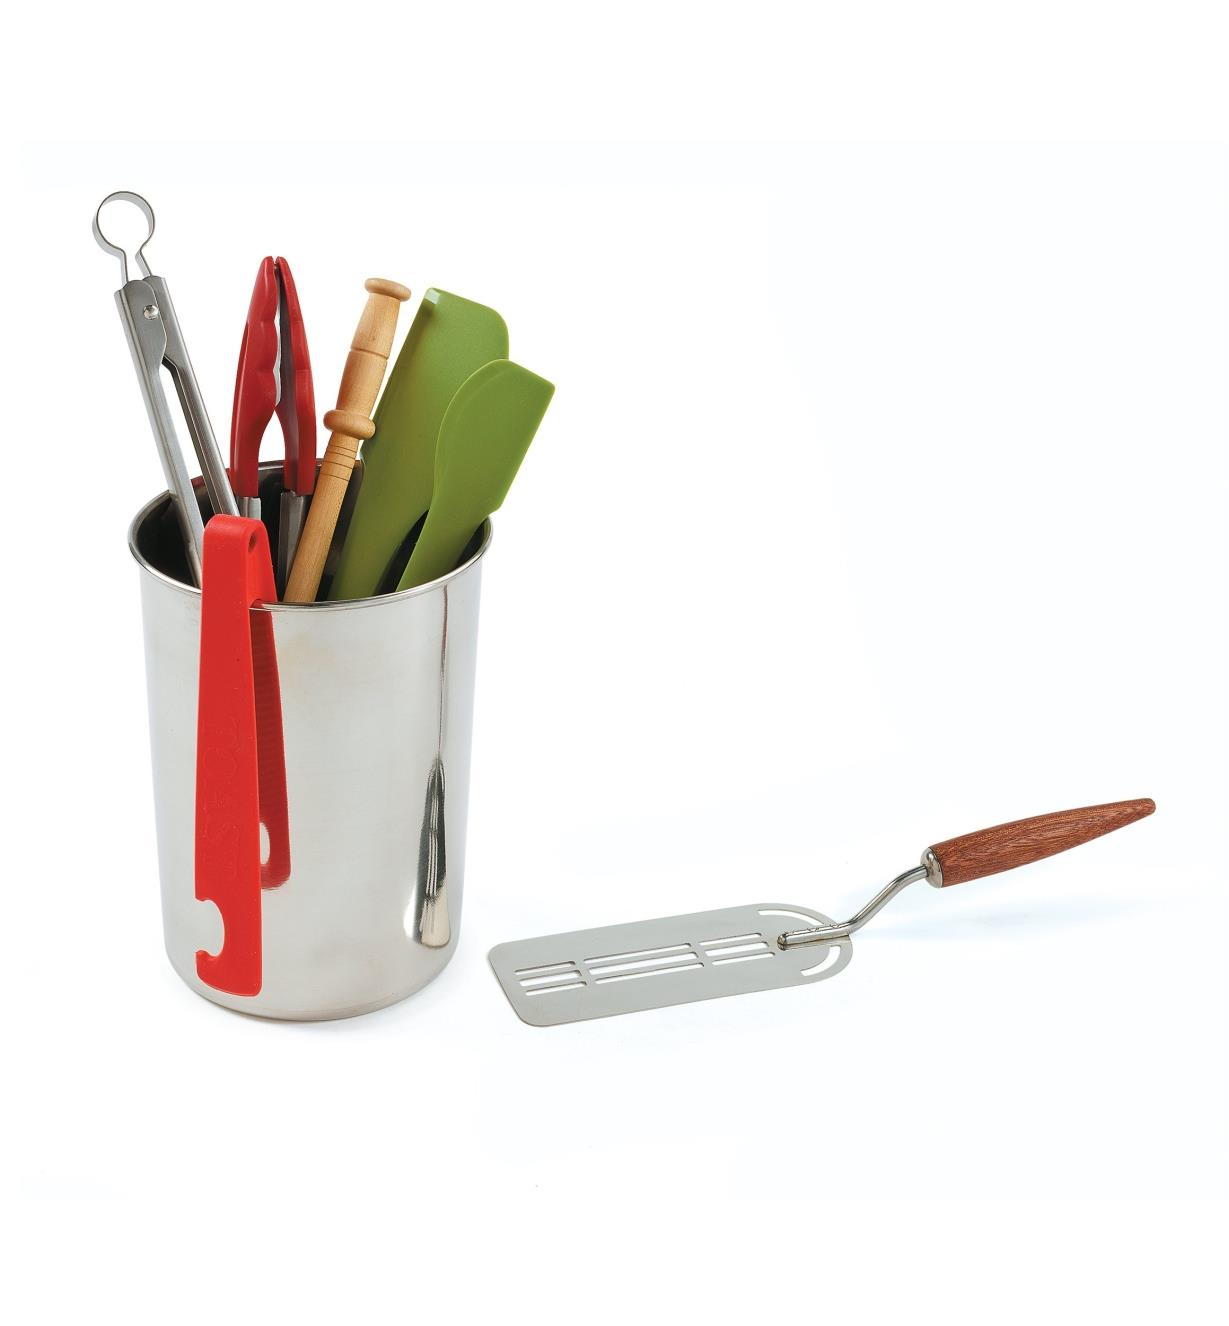 Stainless-Steel canister holding various kitchen utensils